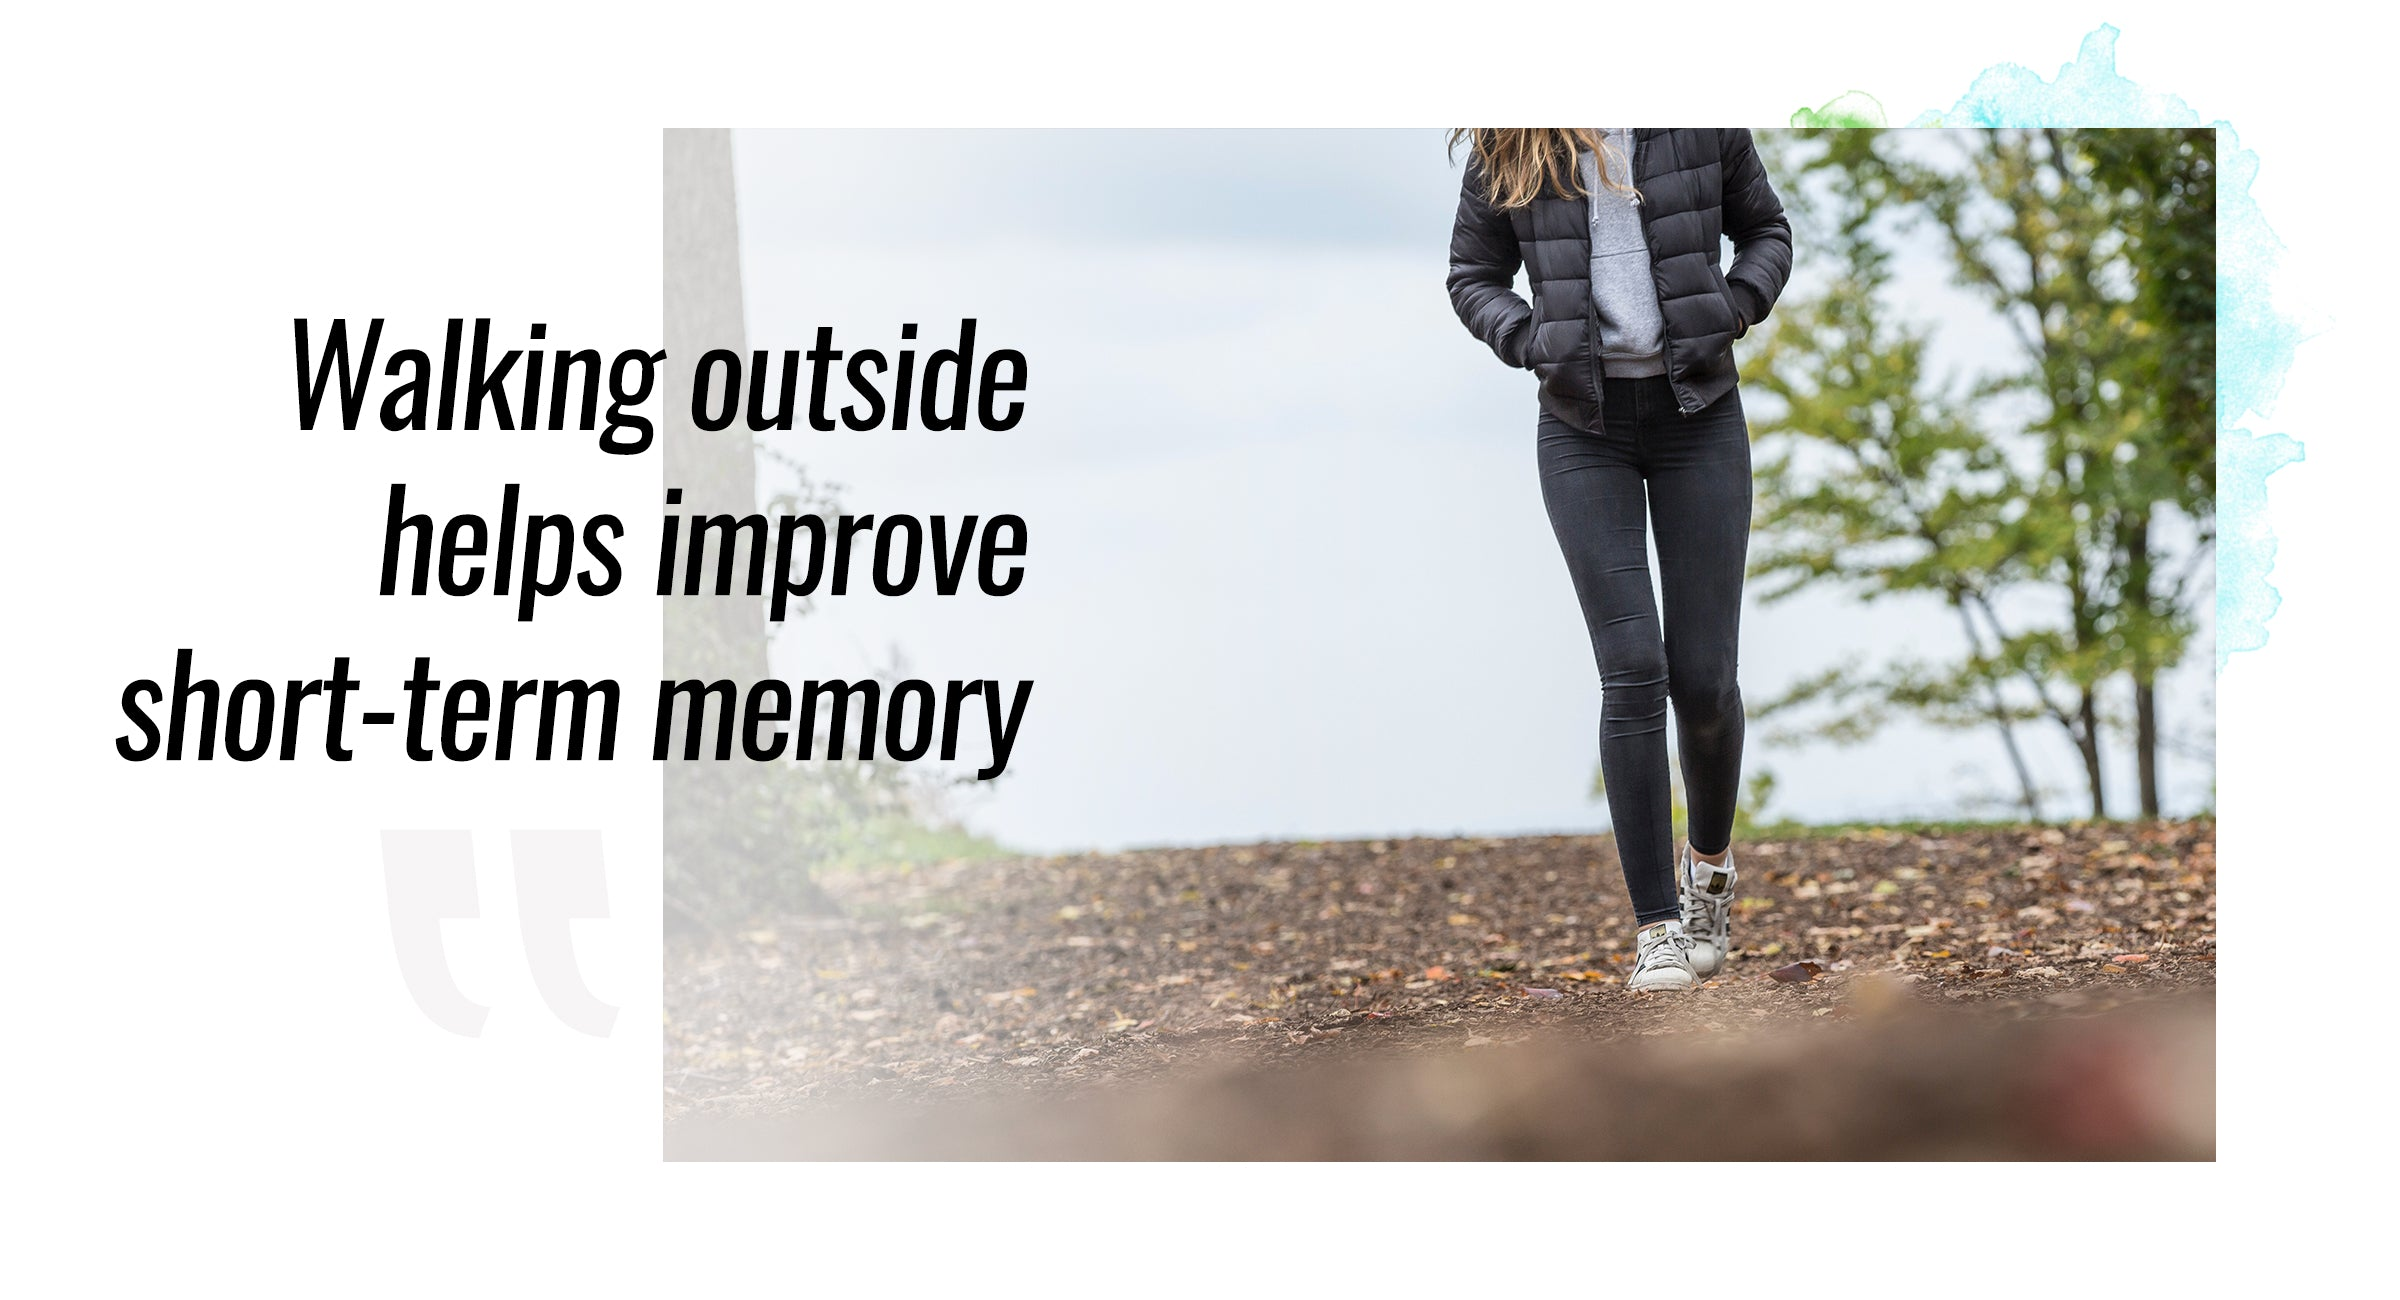 Walking outside helps improve short-term memory